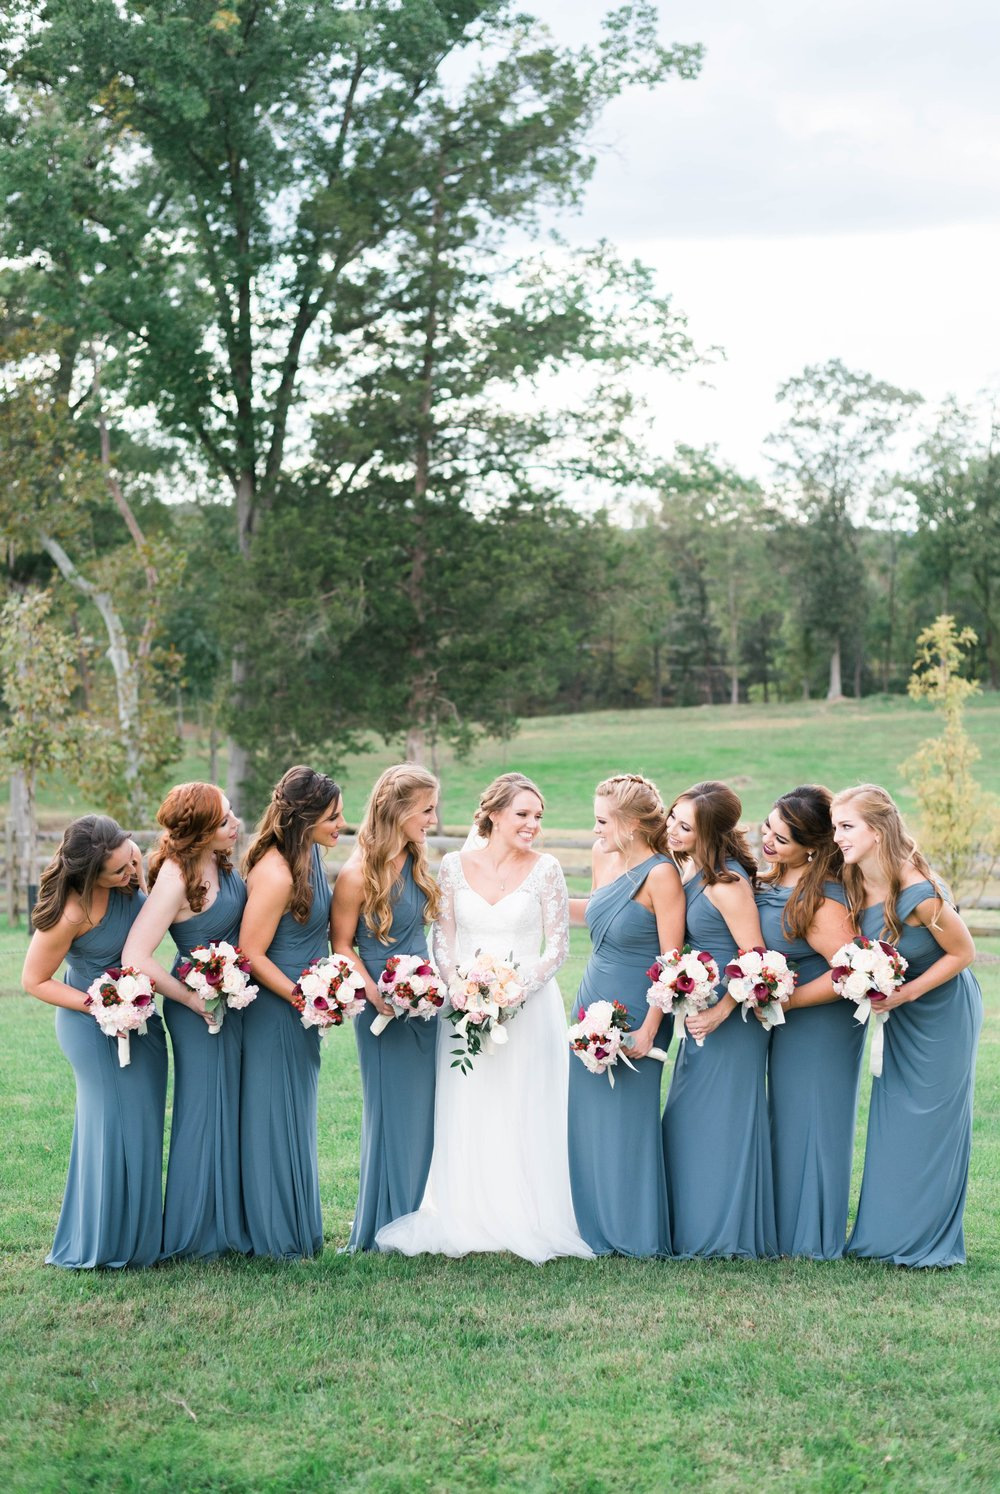 GrantElizabeth_wineryatbullrun_DCwedding_Virginiaweddingphotographer 5.jpg